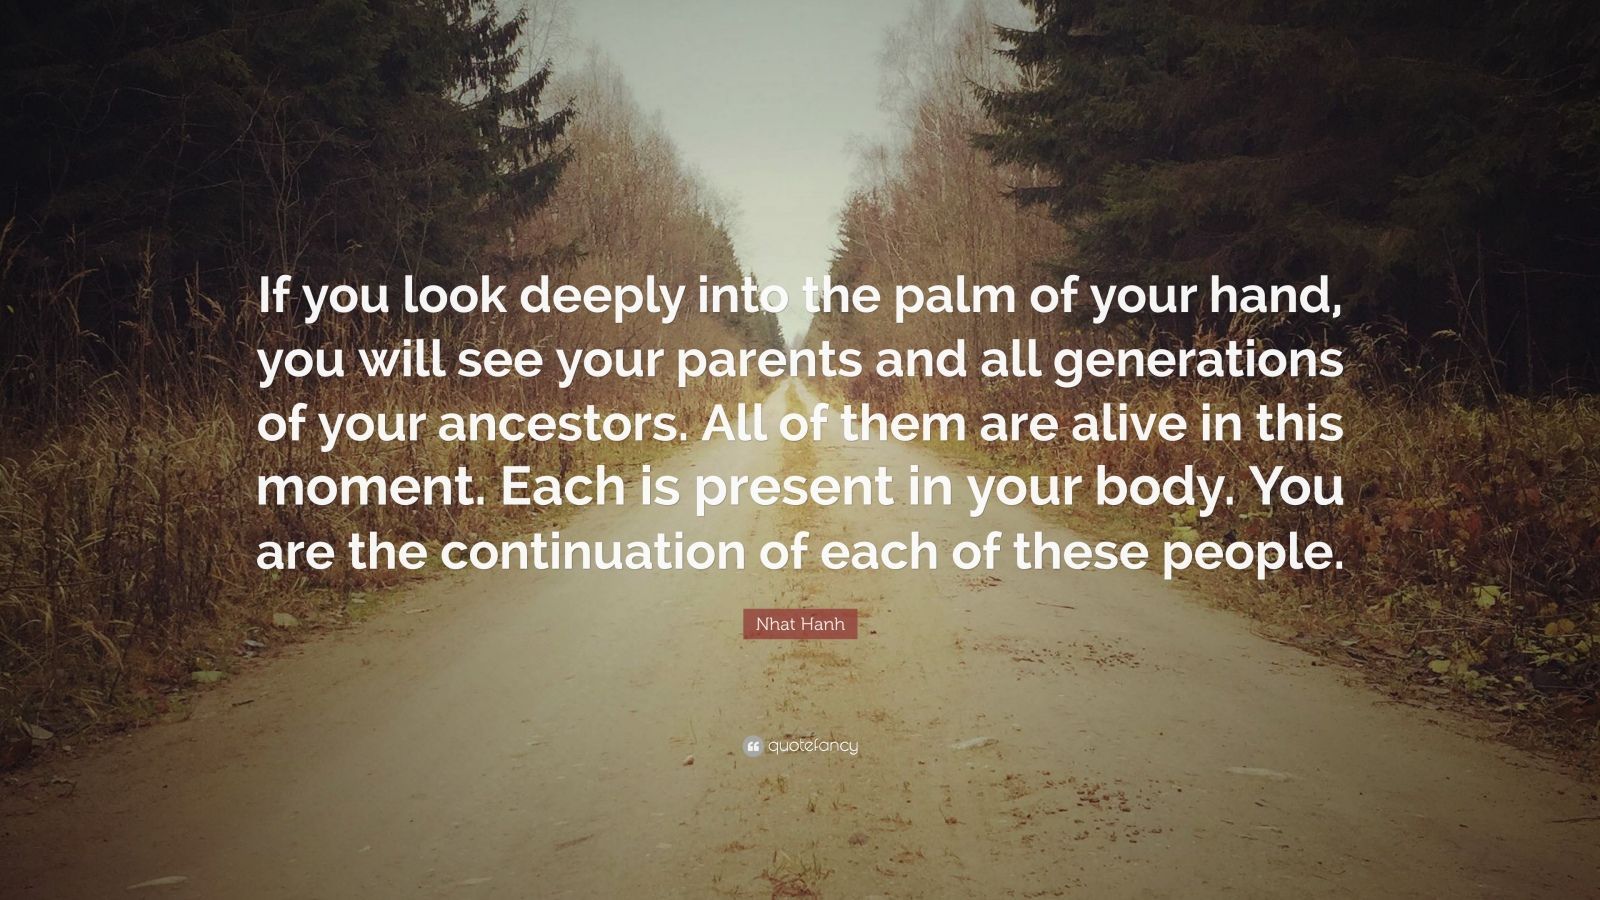 """Nhat Hanh Quote: """"If you look deeply into the palm of your hand, you will see your parents and all generations of your ancestors. All of them are alive in this moment. Each is present in your body. You are the continuation of each of these people."""""""